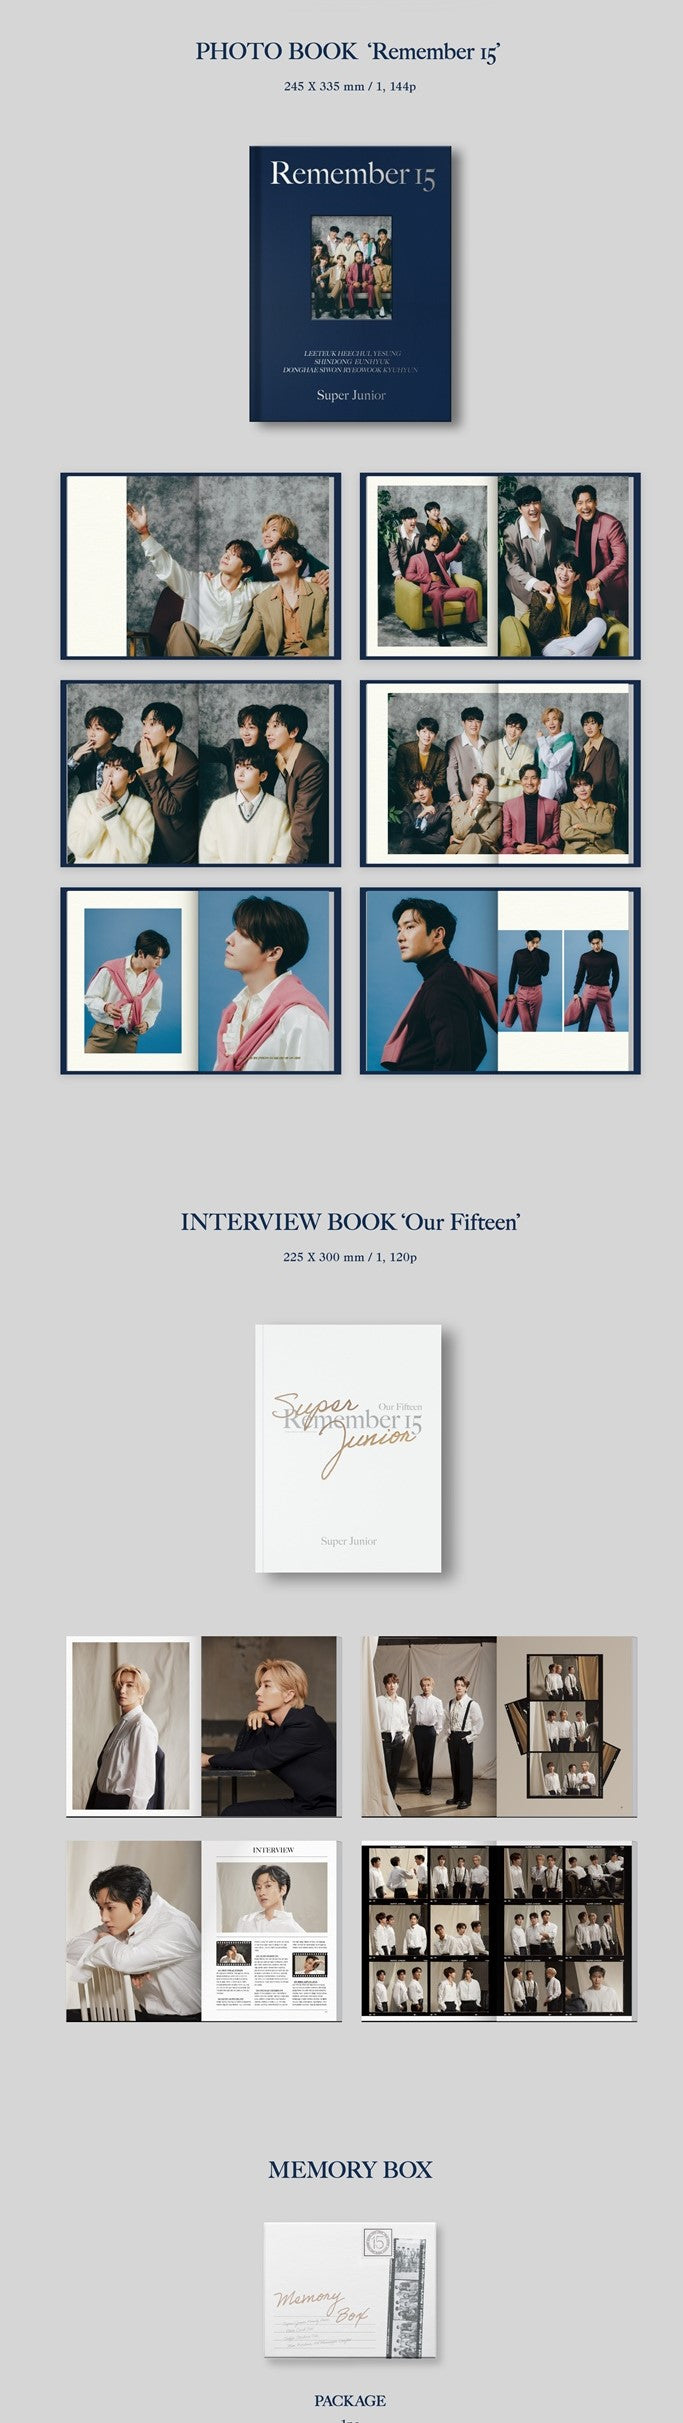 SUPER JUNIOR - 15TH ANNIVERSARY PHOTO BOOK [REMEMBER 15]